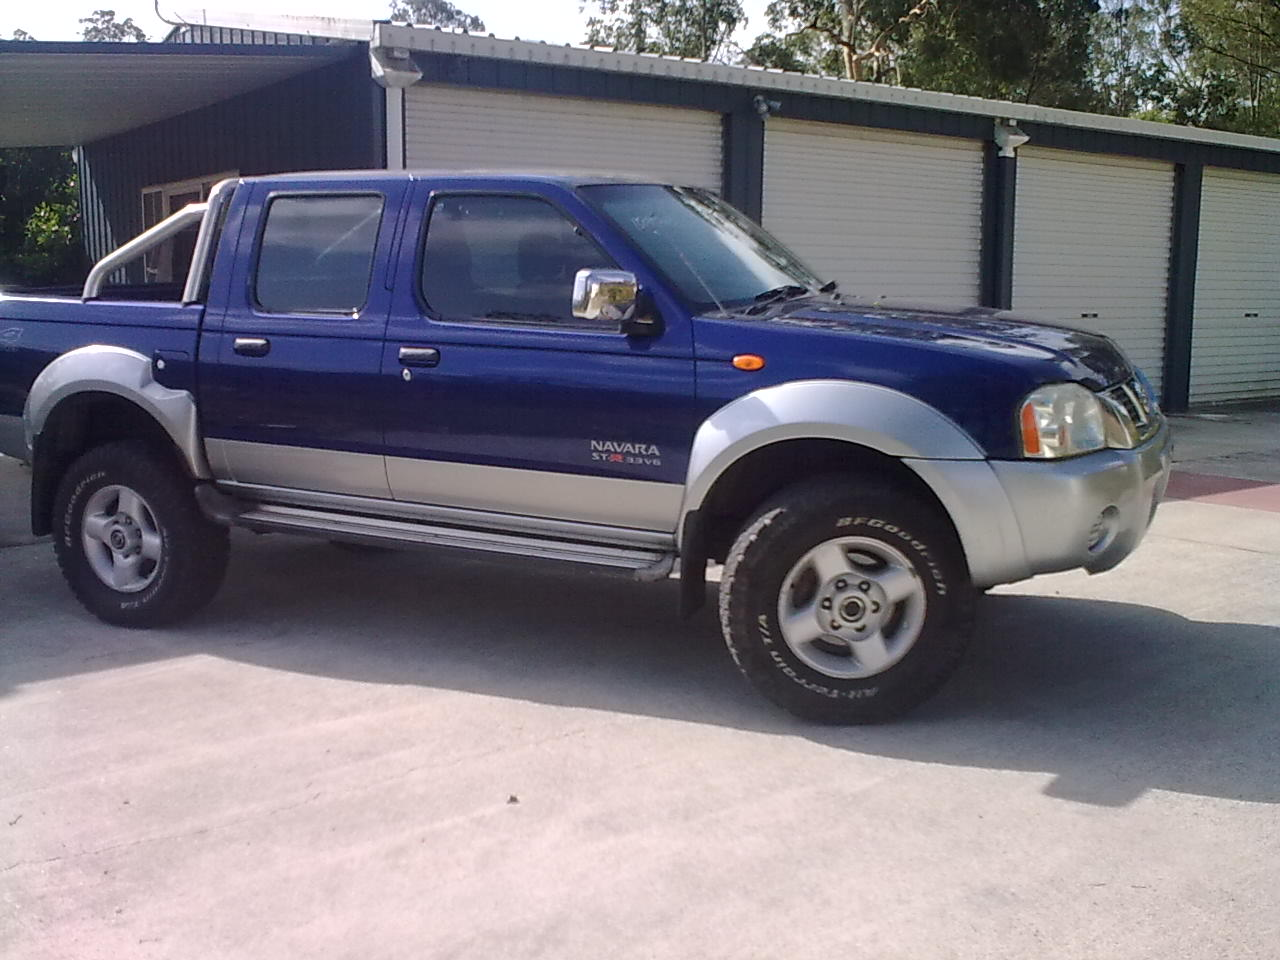 Nissan Navara 2004 Review Amazing Pictures And Images